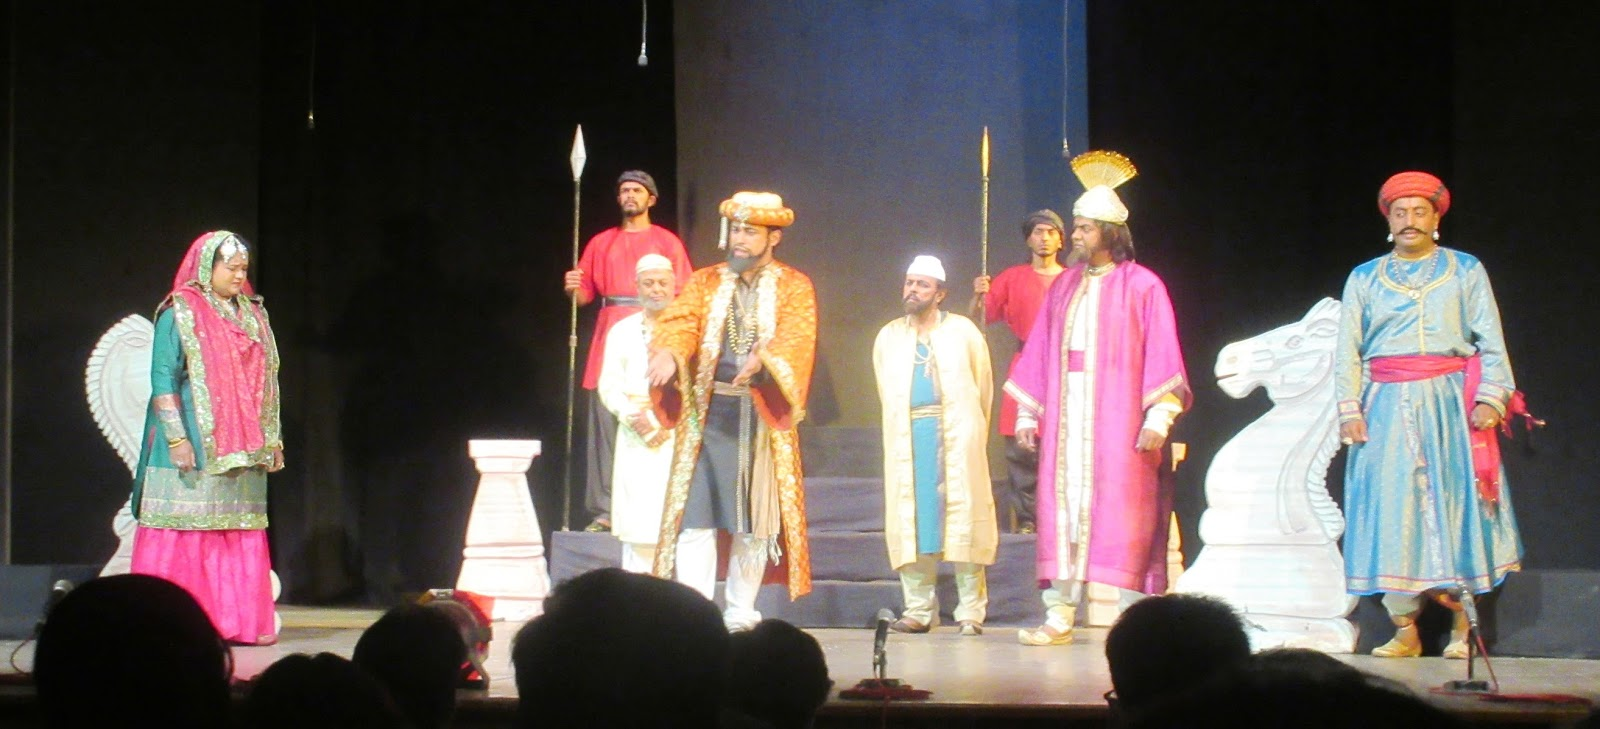 tughlaq as contemporary play Tughlaq by girish karnad is a thirteen-scene play about the turbulent rule of mohammad bin tughlaq this seems on the outlook as a historical play, but is appropriate to the contemporary politics of any era, especially in the current global scenario.